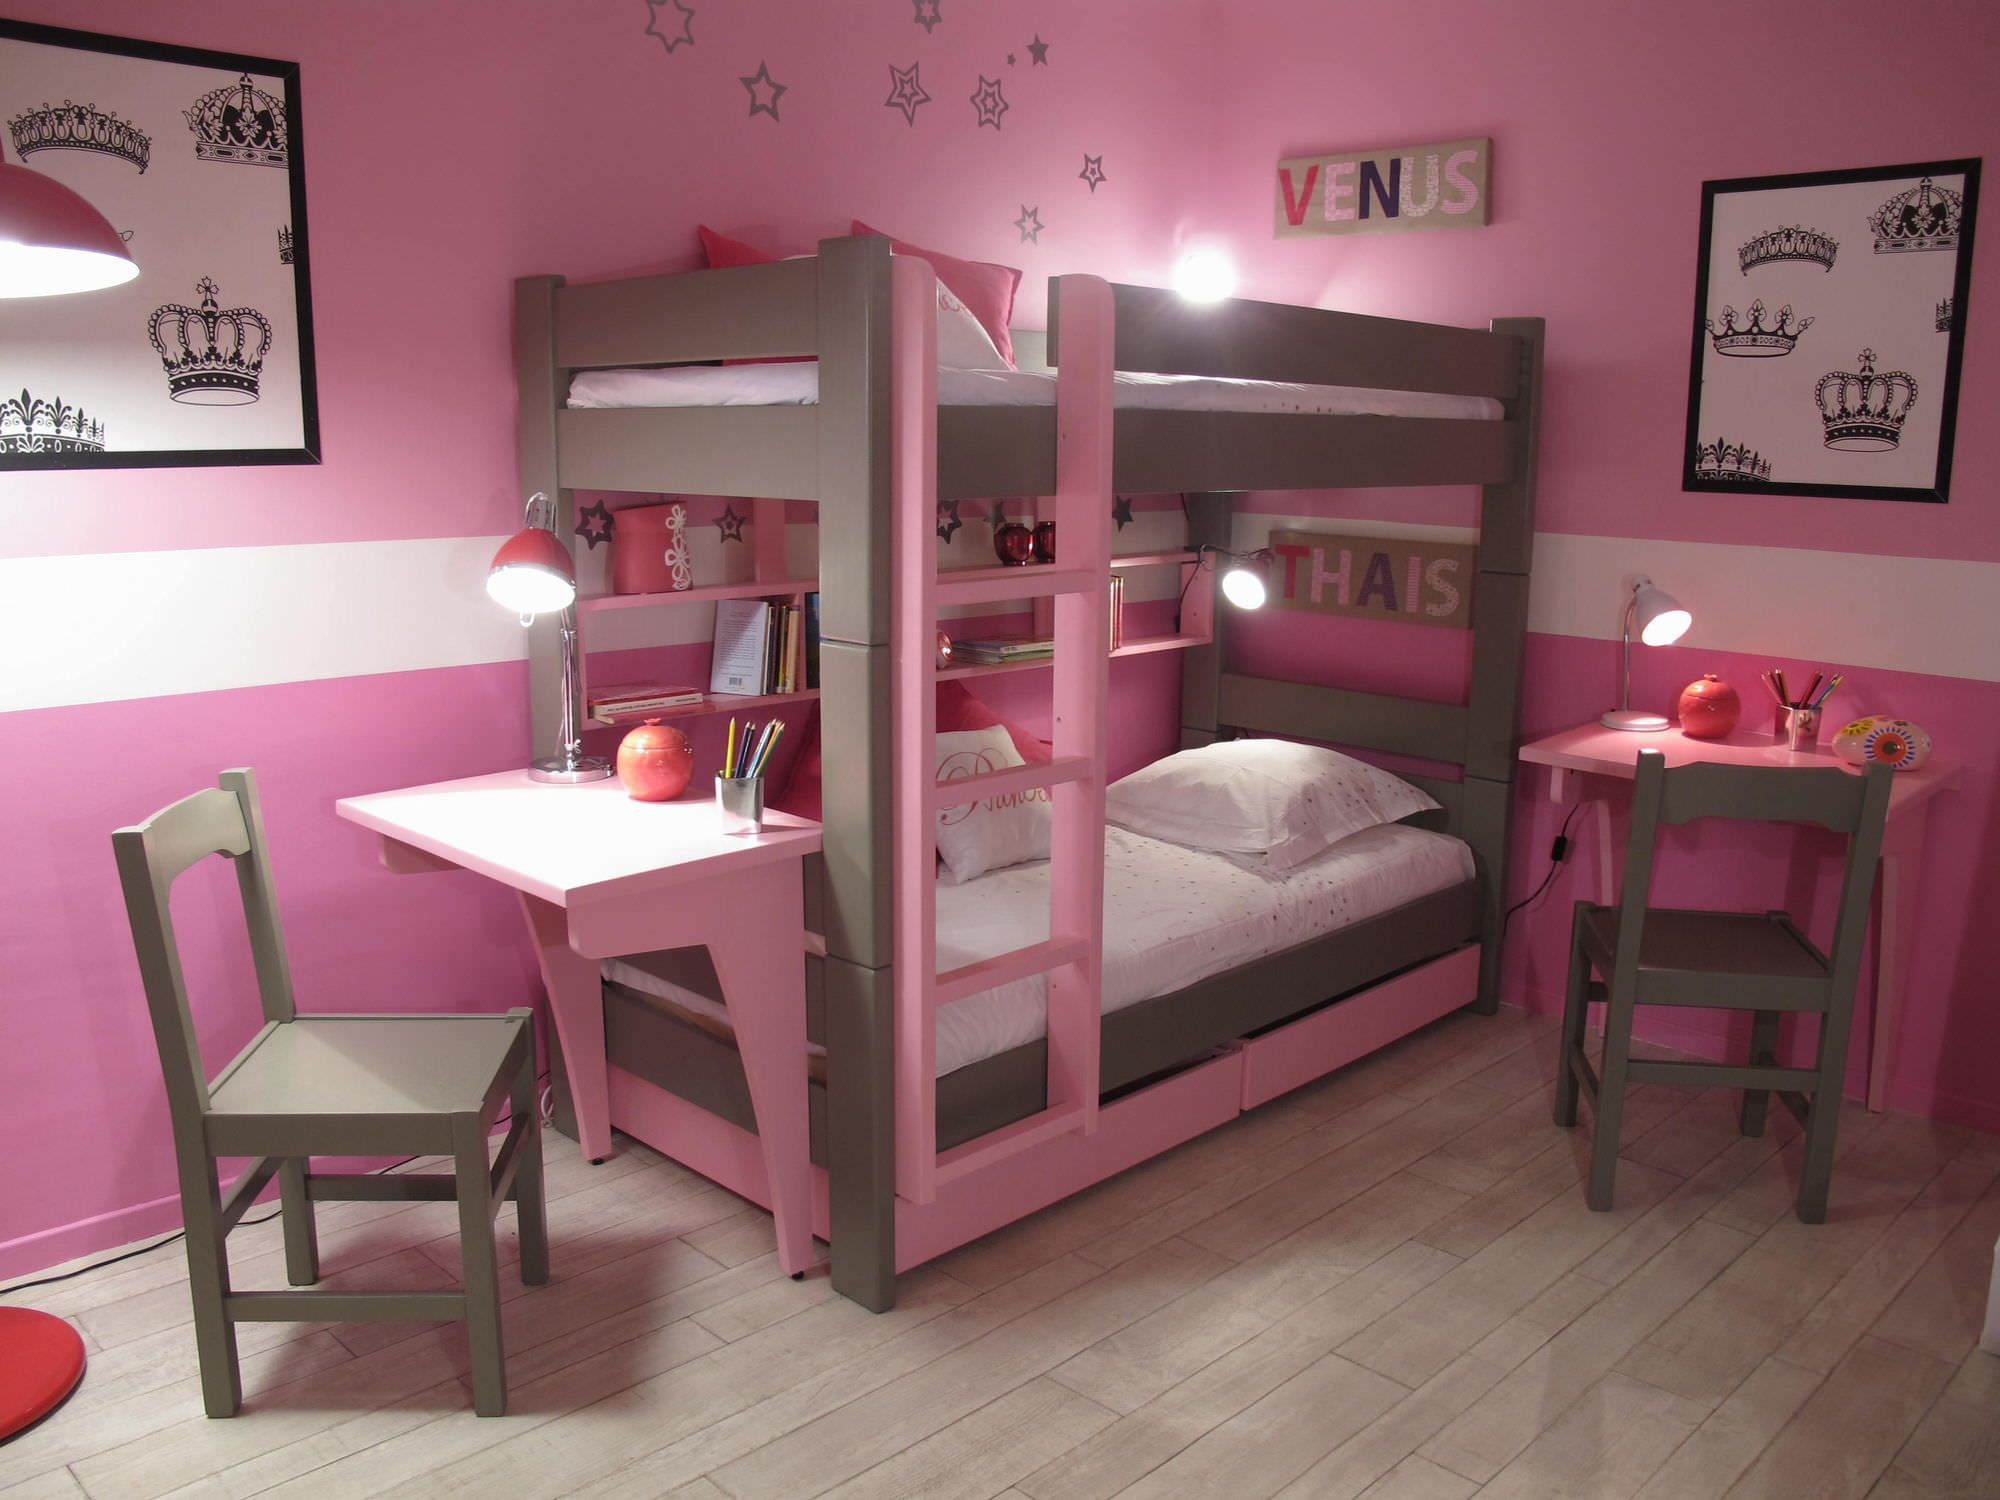 Double deck bedroom for kids girls - Cute Bunk Bed Idea For Teenage Girls With Pink Wall Paint Color And Wooden Floor Also